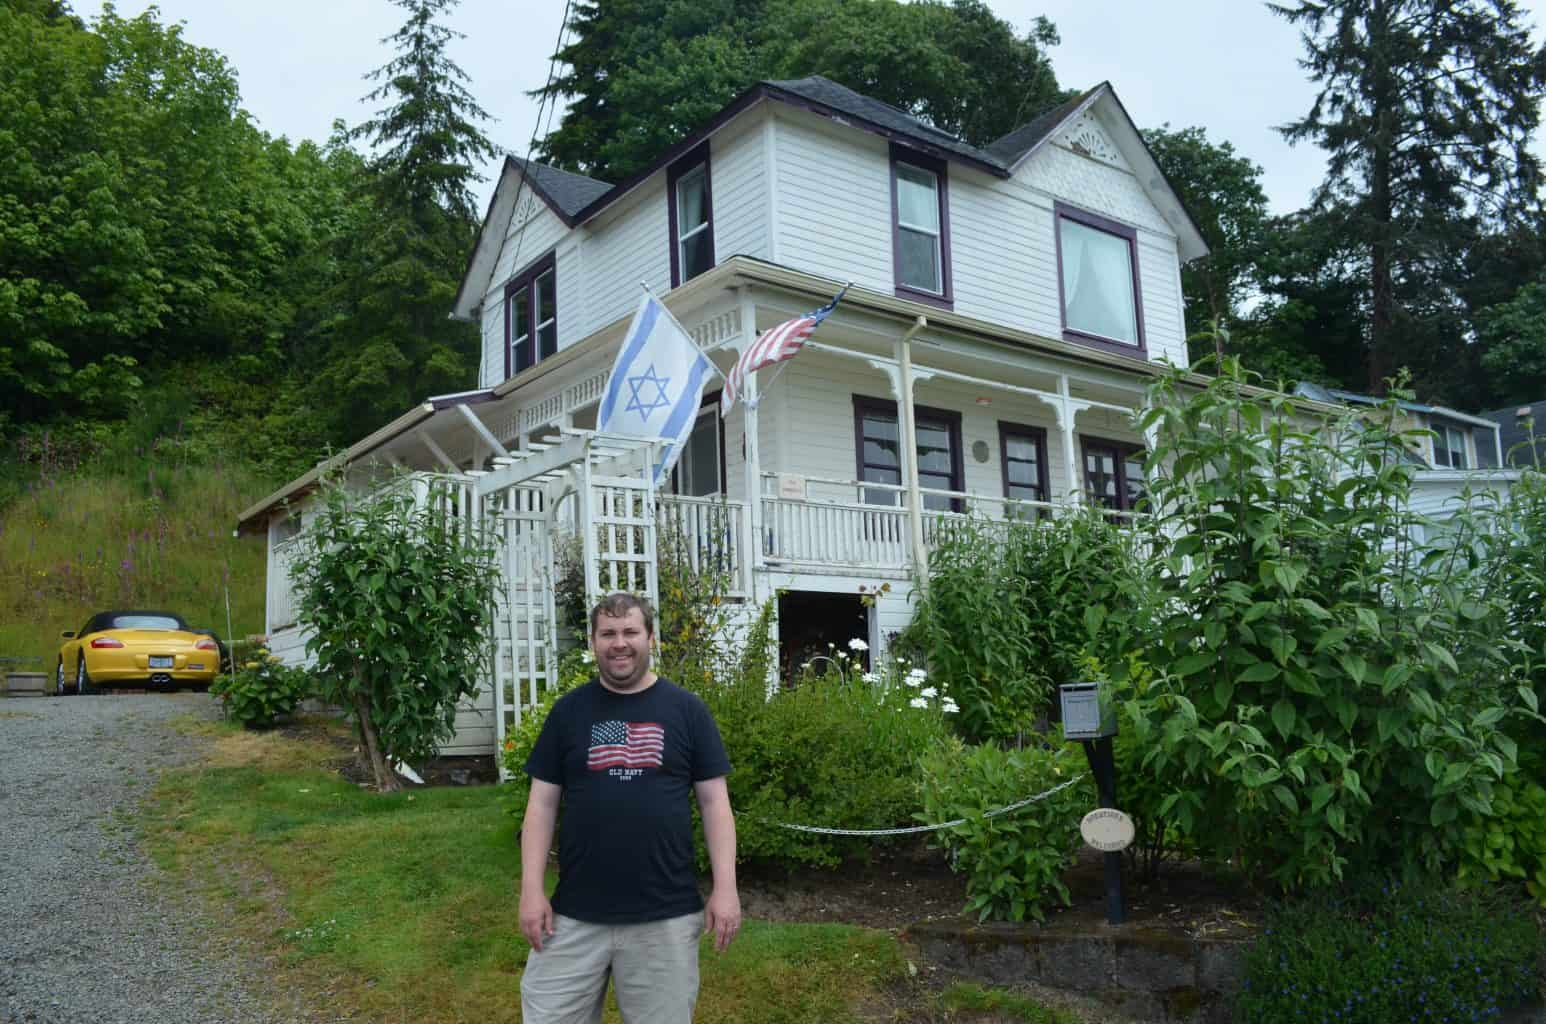 Goonies house in Astoria Oregon